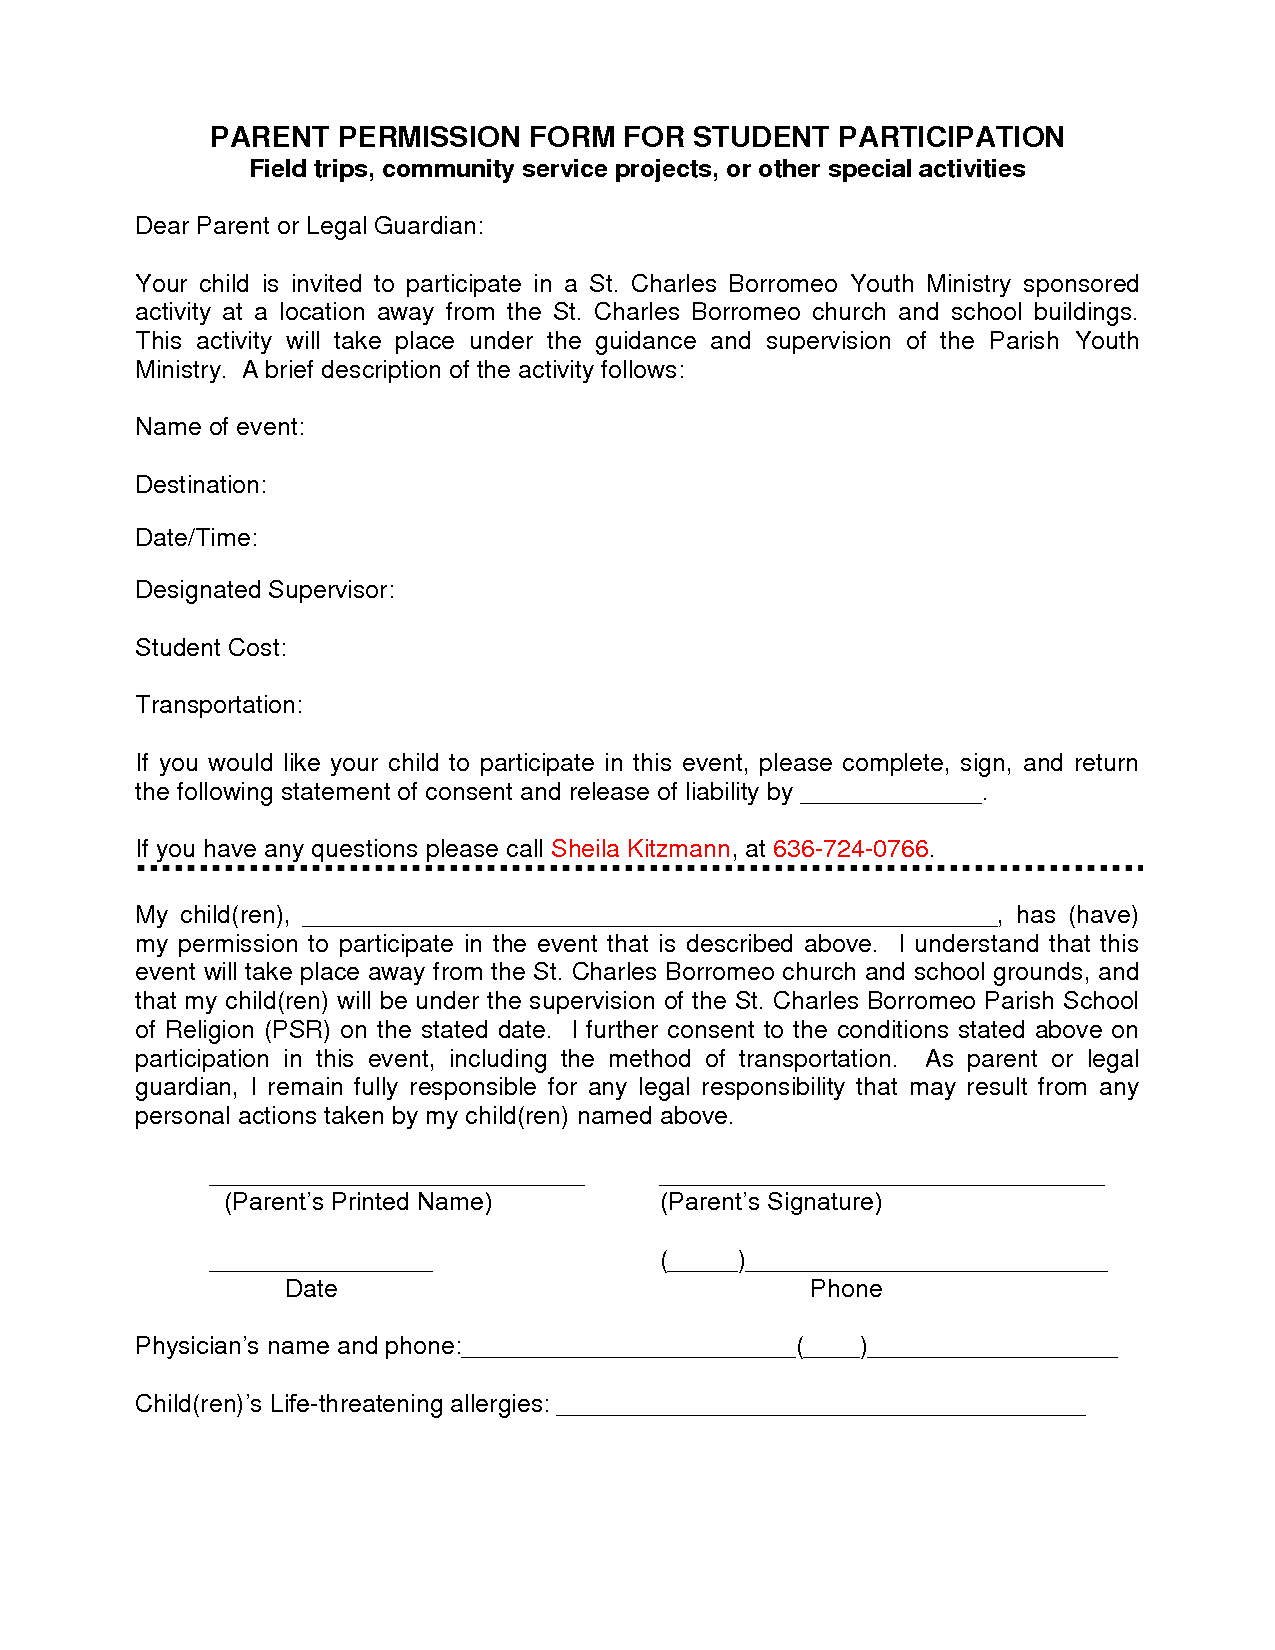 sample word document on old age interview in your community